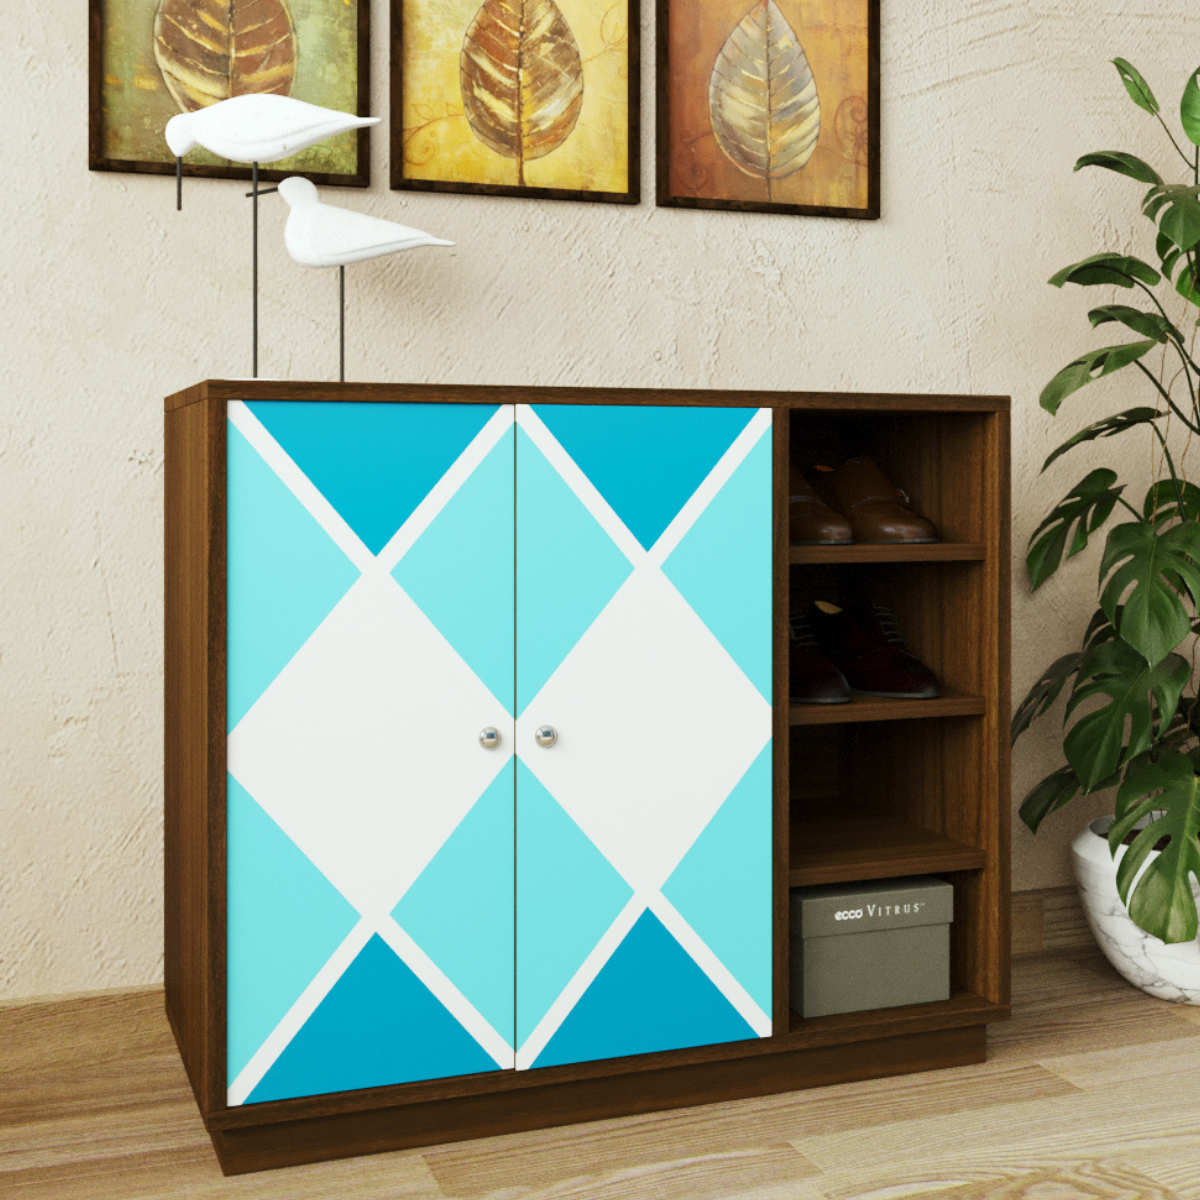 Pengu Wooden Shoe Rack - Geometric Blue